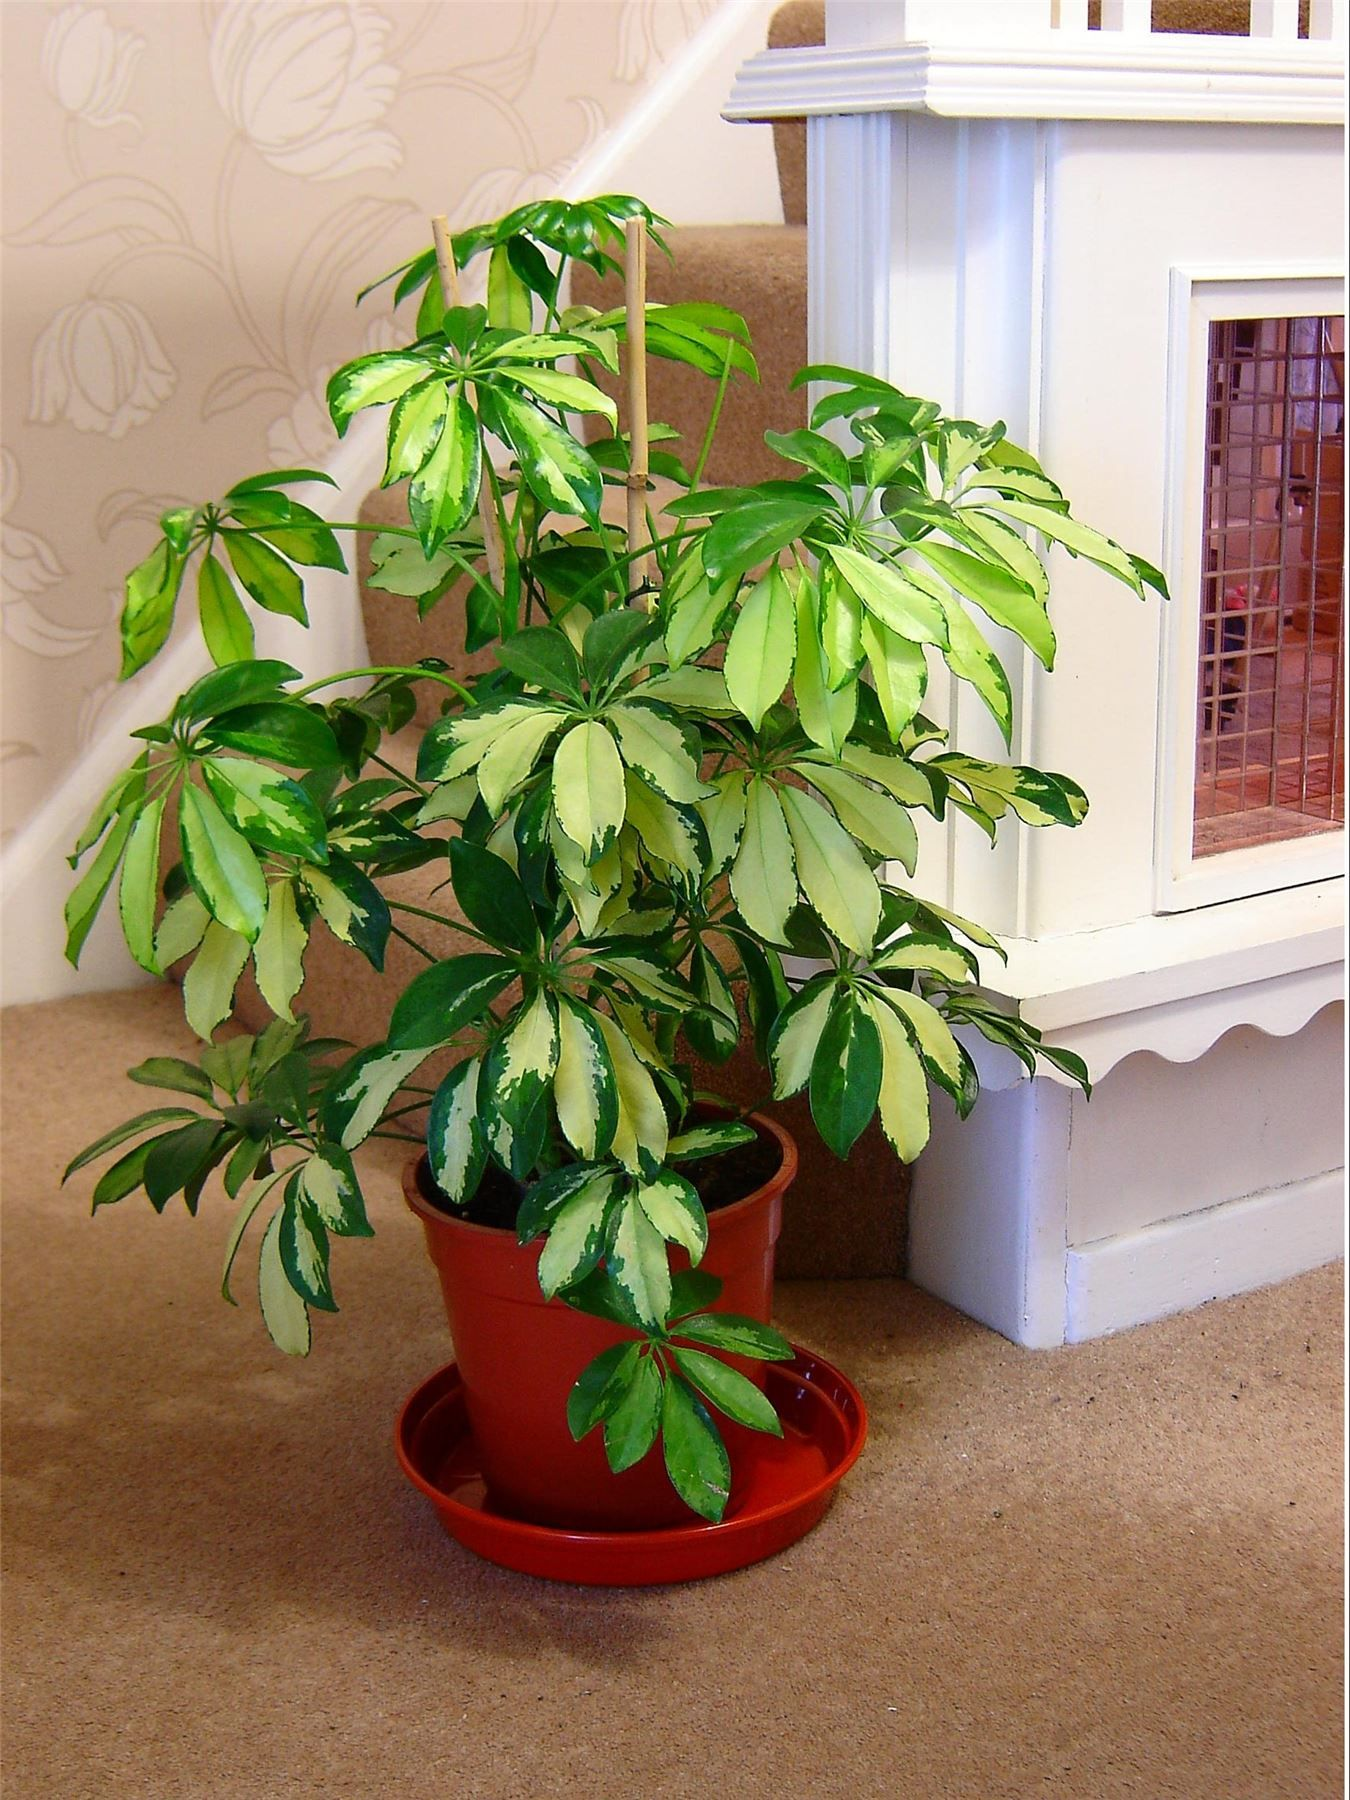 Tall Indoor Plants With Big Leaves Schefflera Umbrella Tree Is Trees Shrubs Liana Flowering